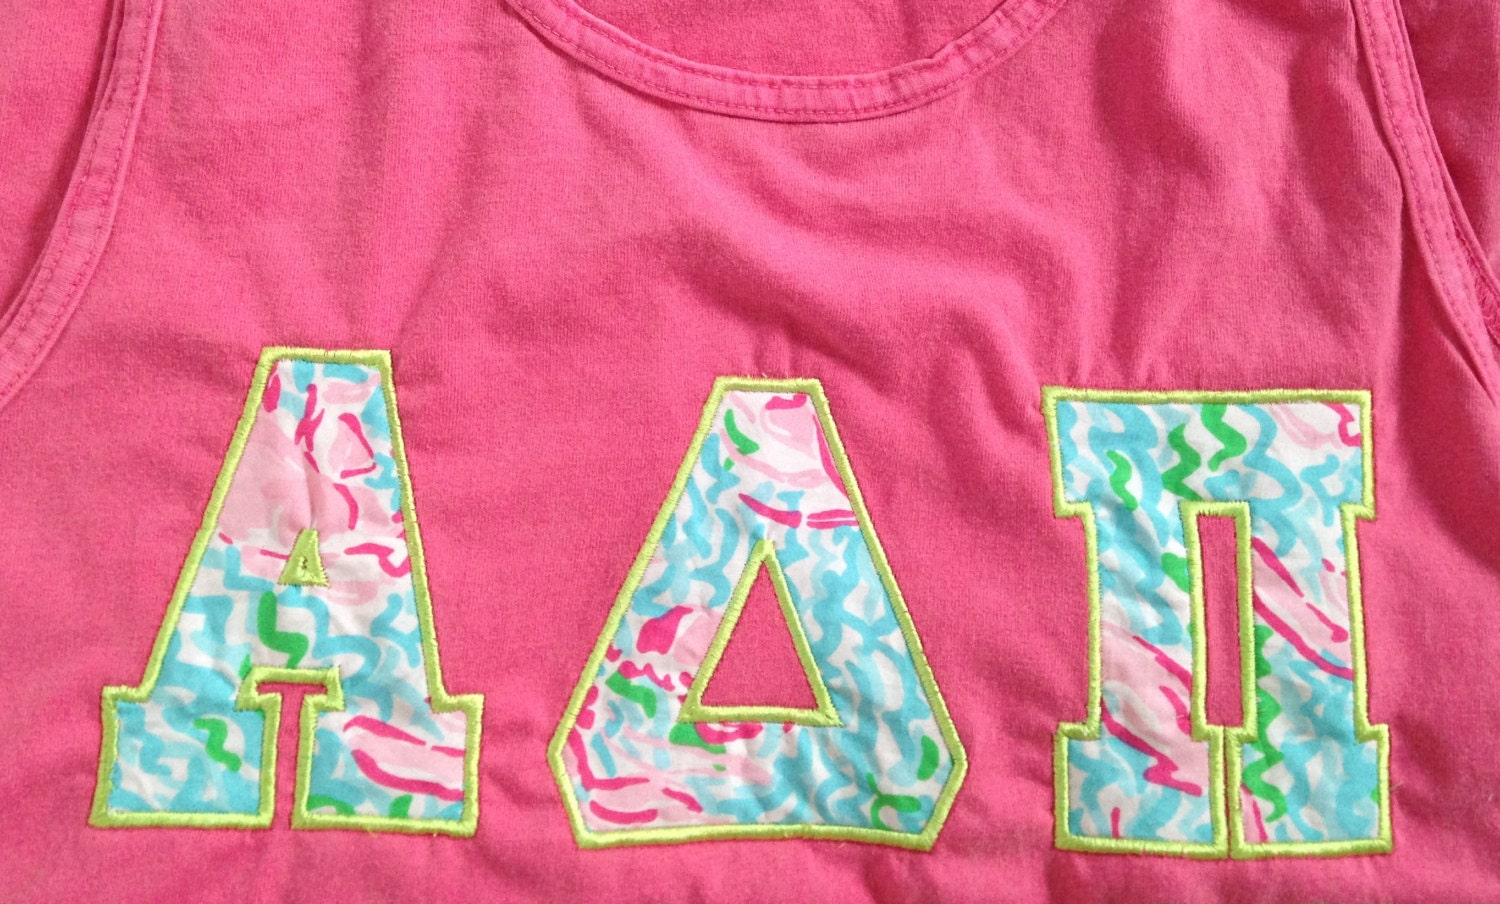 lilly pulitzer sorority letters shirt jersey block short